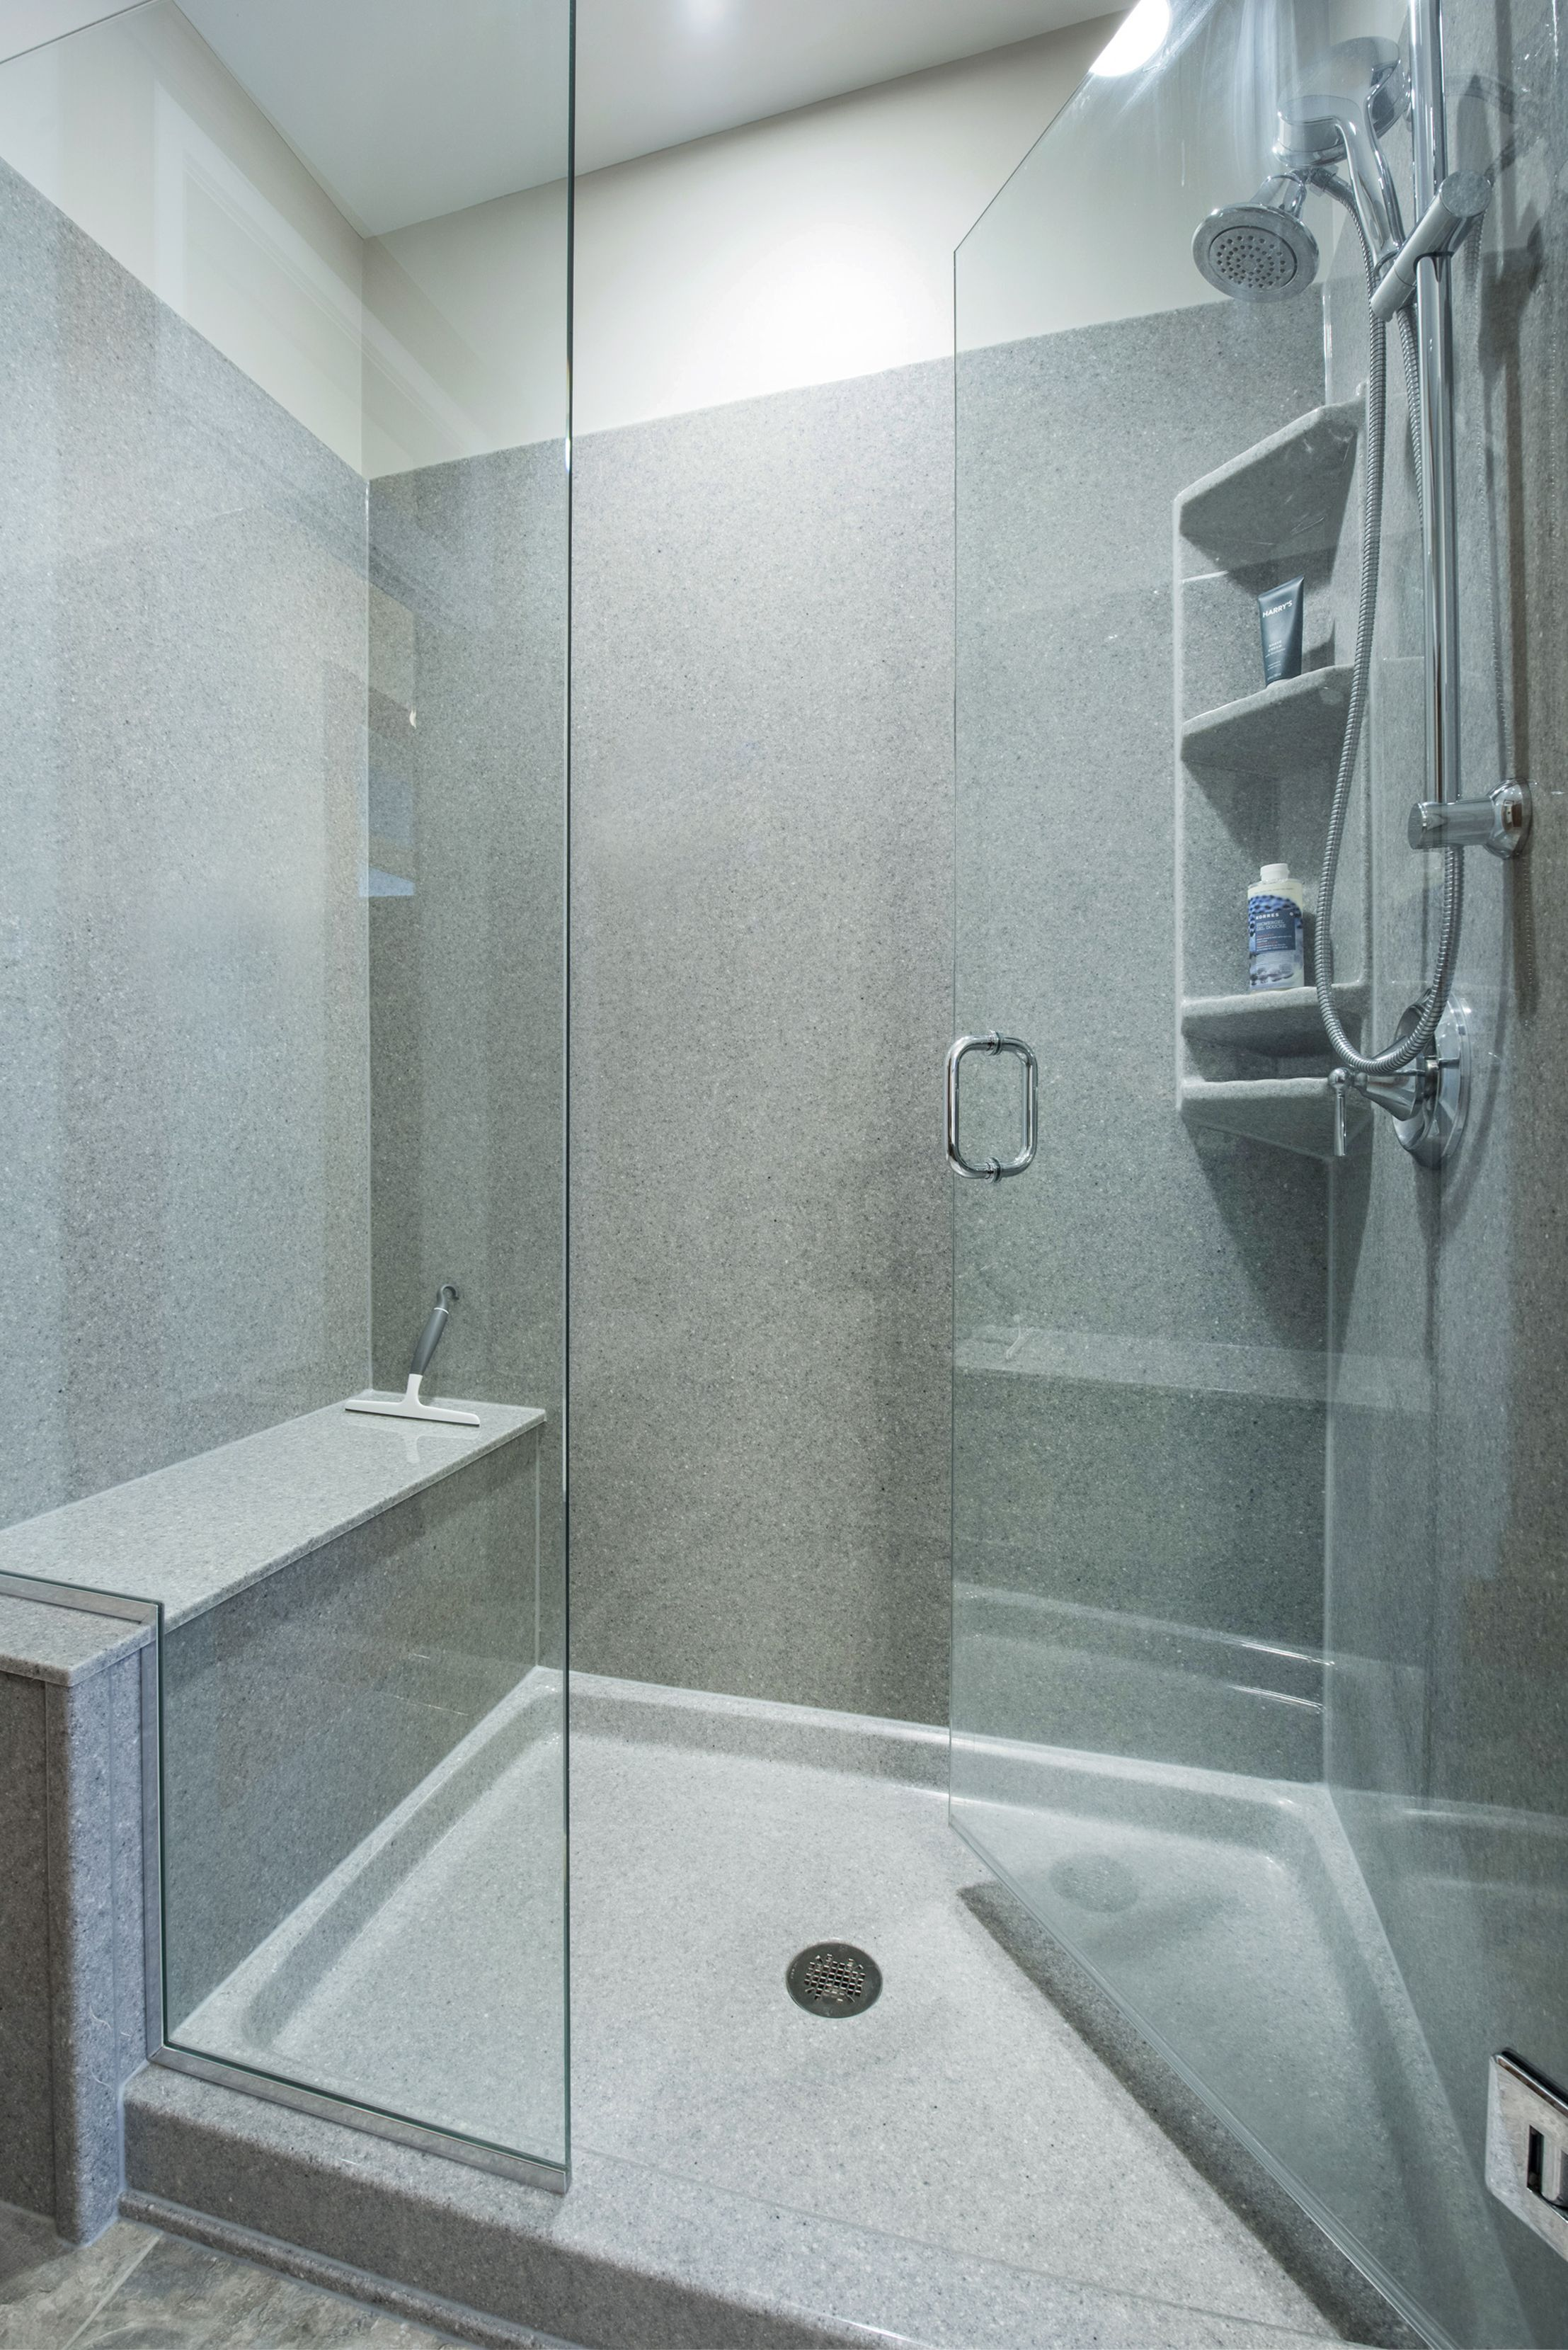 Removing A Tub Allows Space For A Luxurious Walk In Onyx Shower